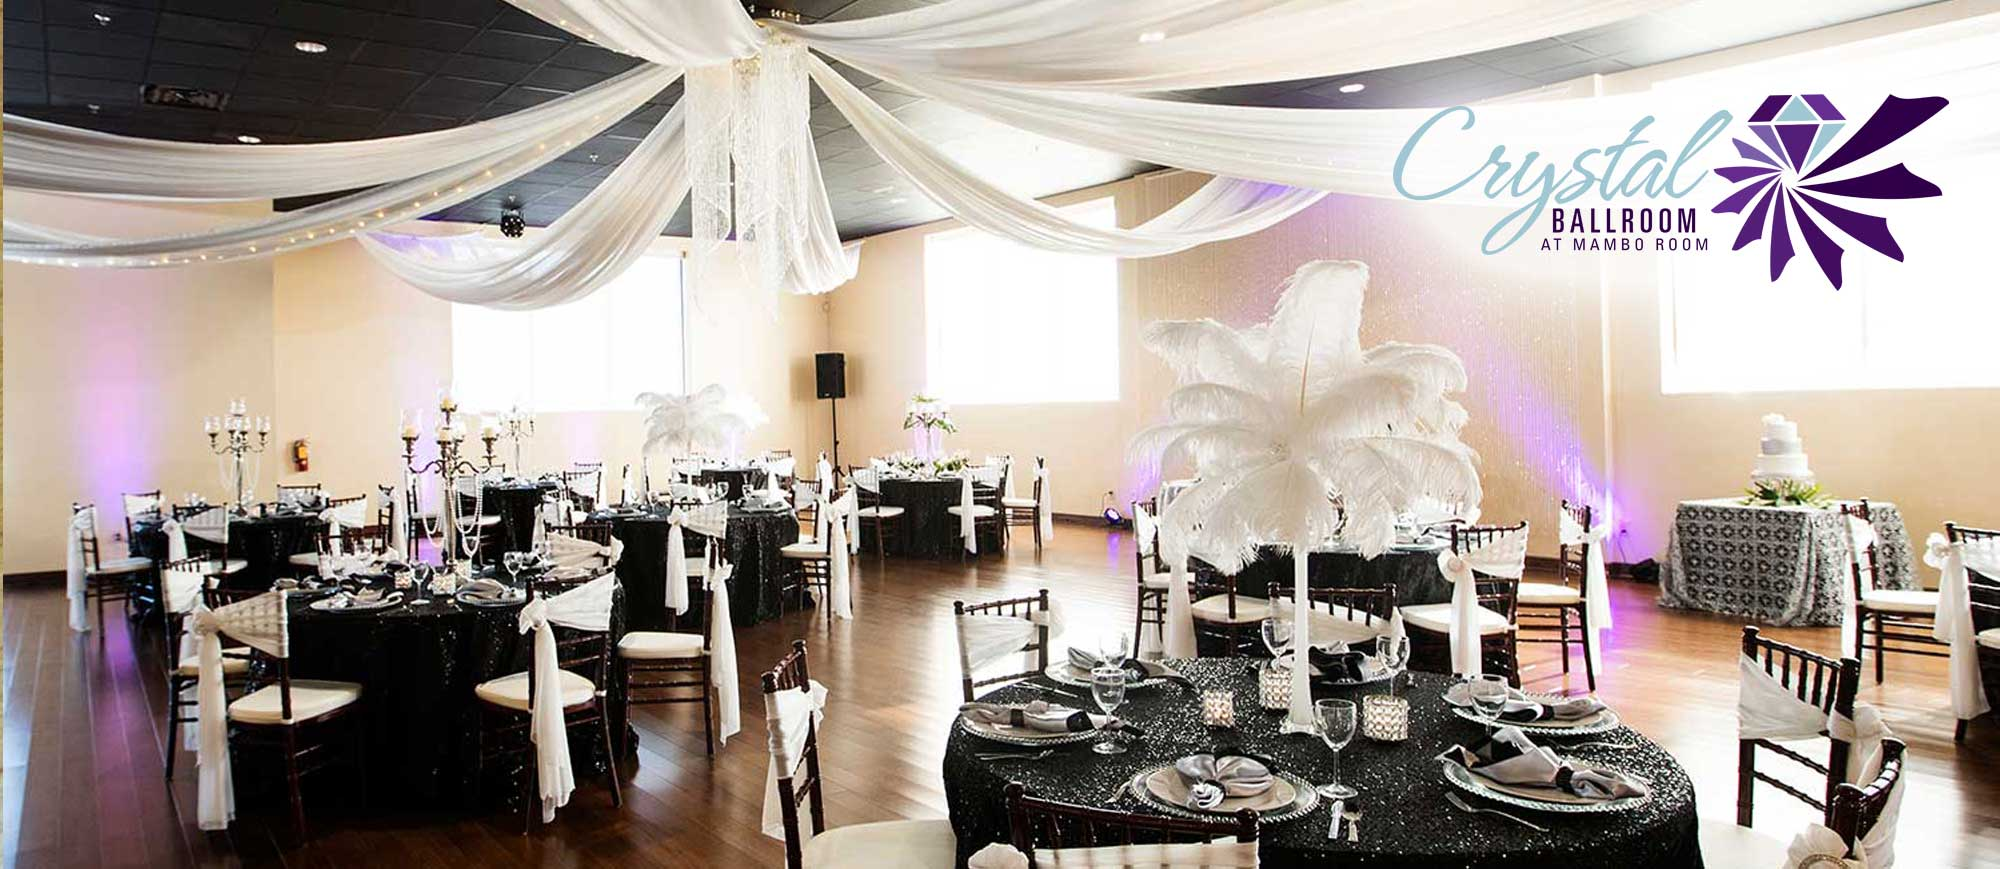 Weddings Crystal Ballroom at Mambo Room